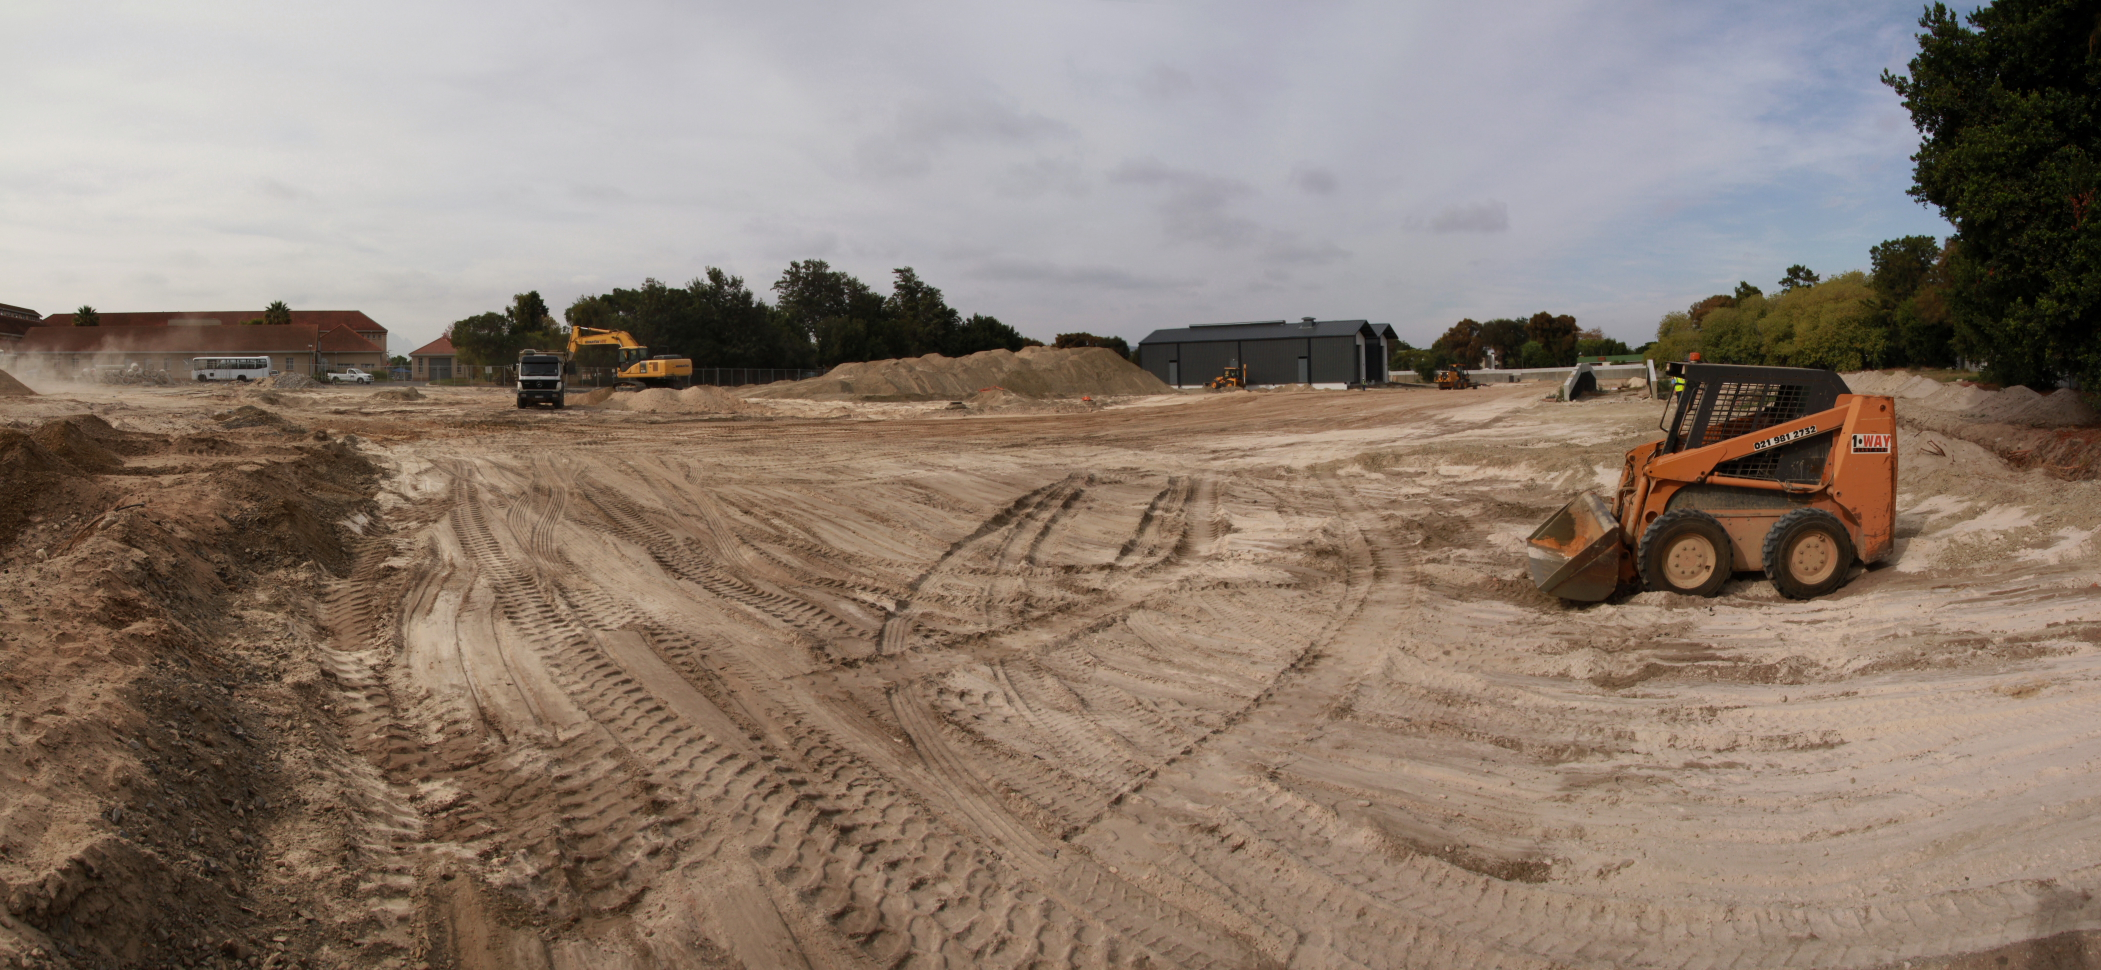 The K53 track is still in the construction phase.